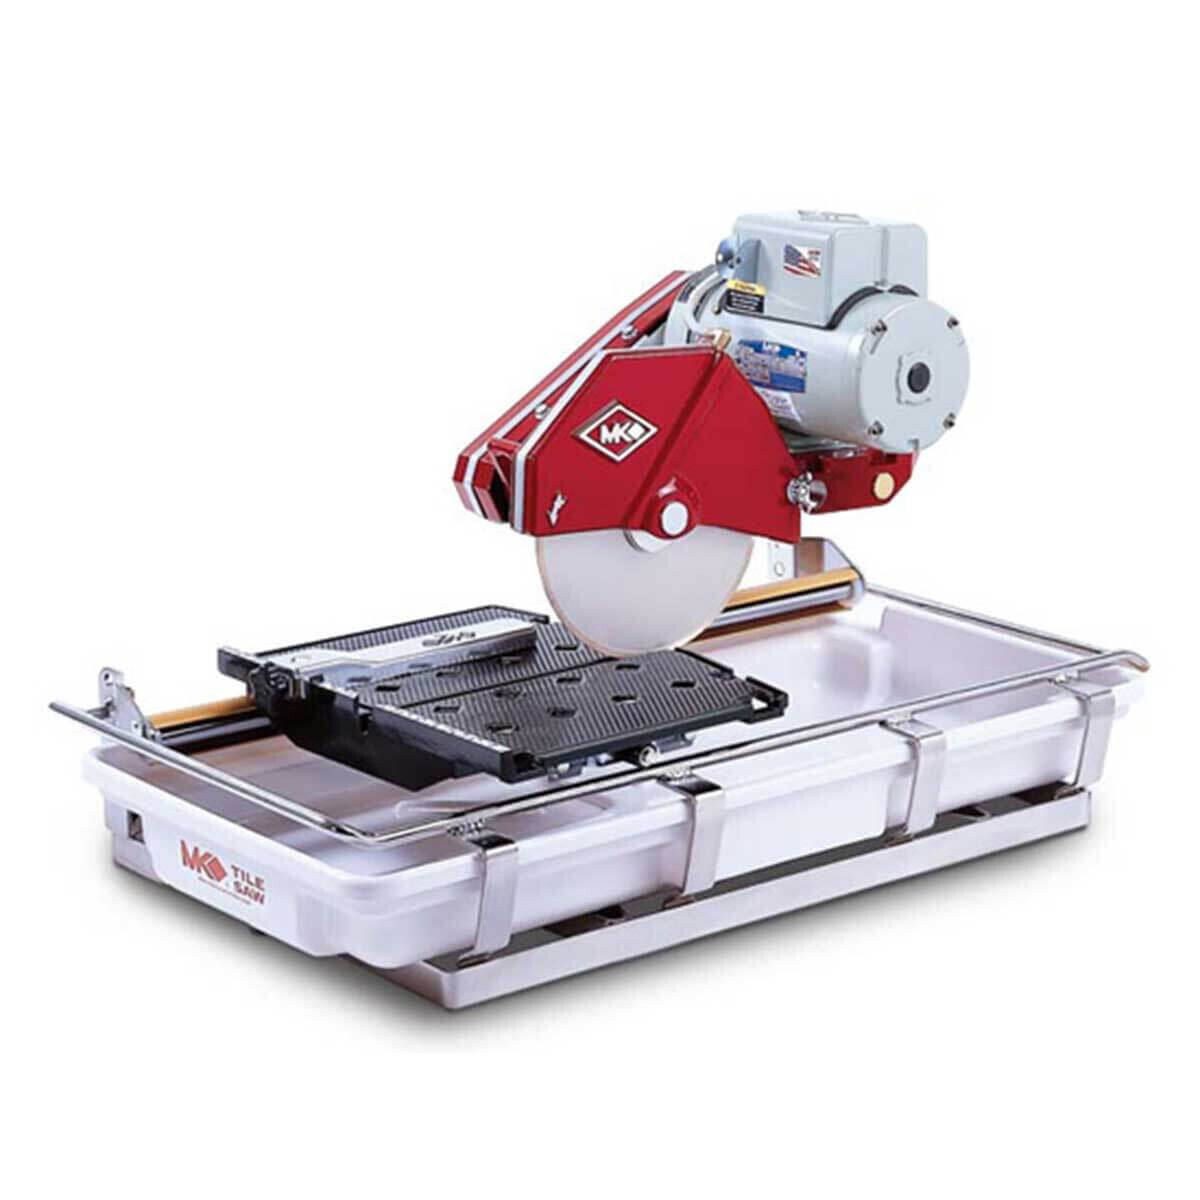 151991 MK-101 Wet Tile Saw Fully enclosed high torque, fan-cooled motor, Permanently lubricated, dual-sealed, heavy-duty blade shaft bearings